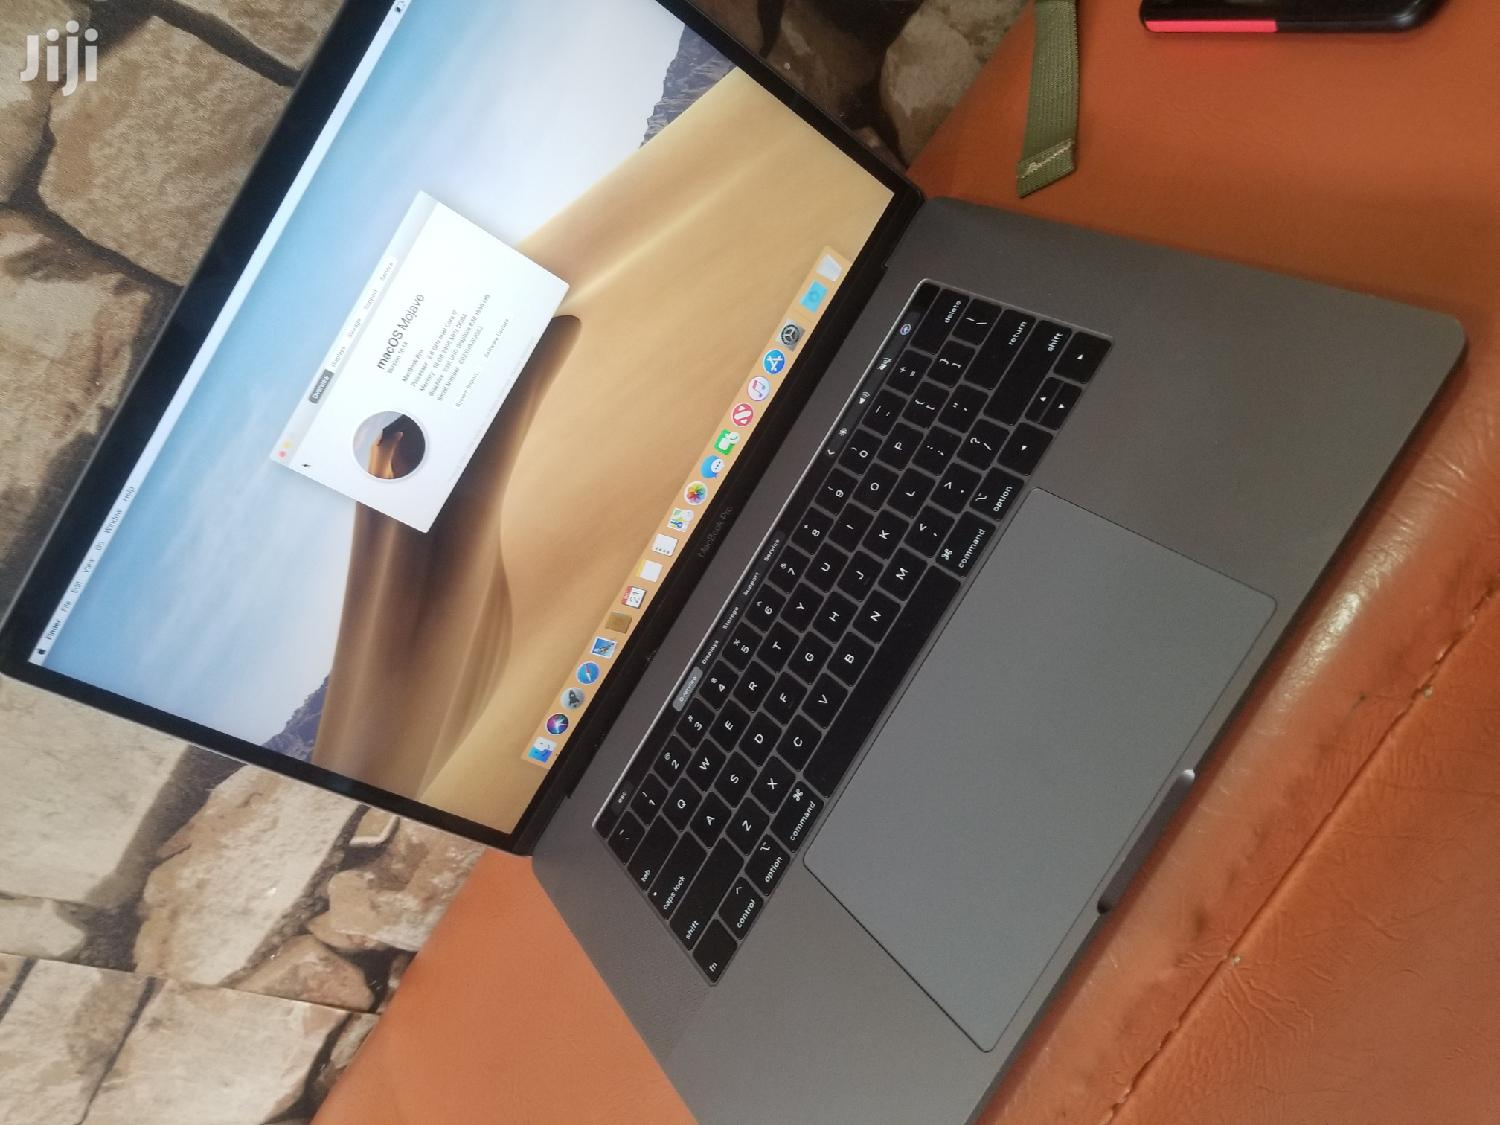 Laptop Apple MacBook Pro 16GB Intel Core i7 SSD 512GB | Laptops & Computers for sale in Accra Metropolitan, Greater Accra, Ghana